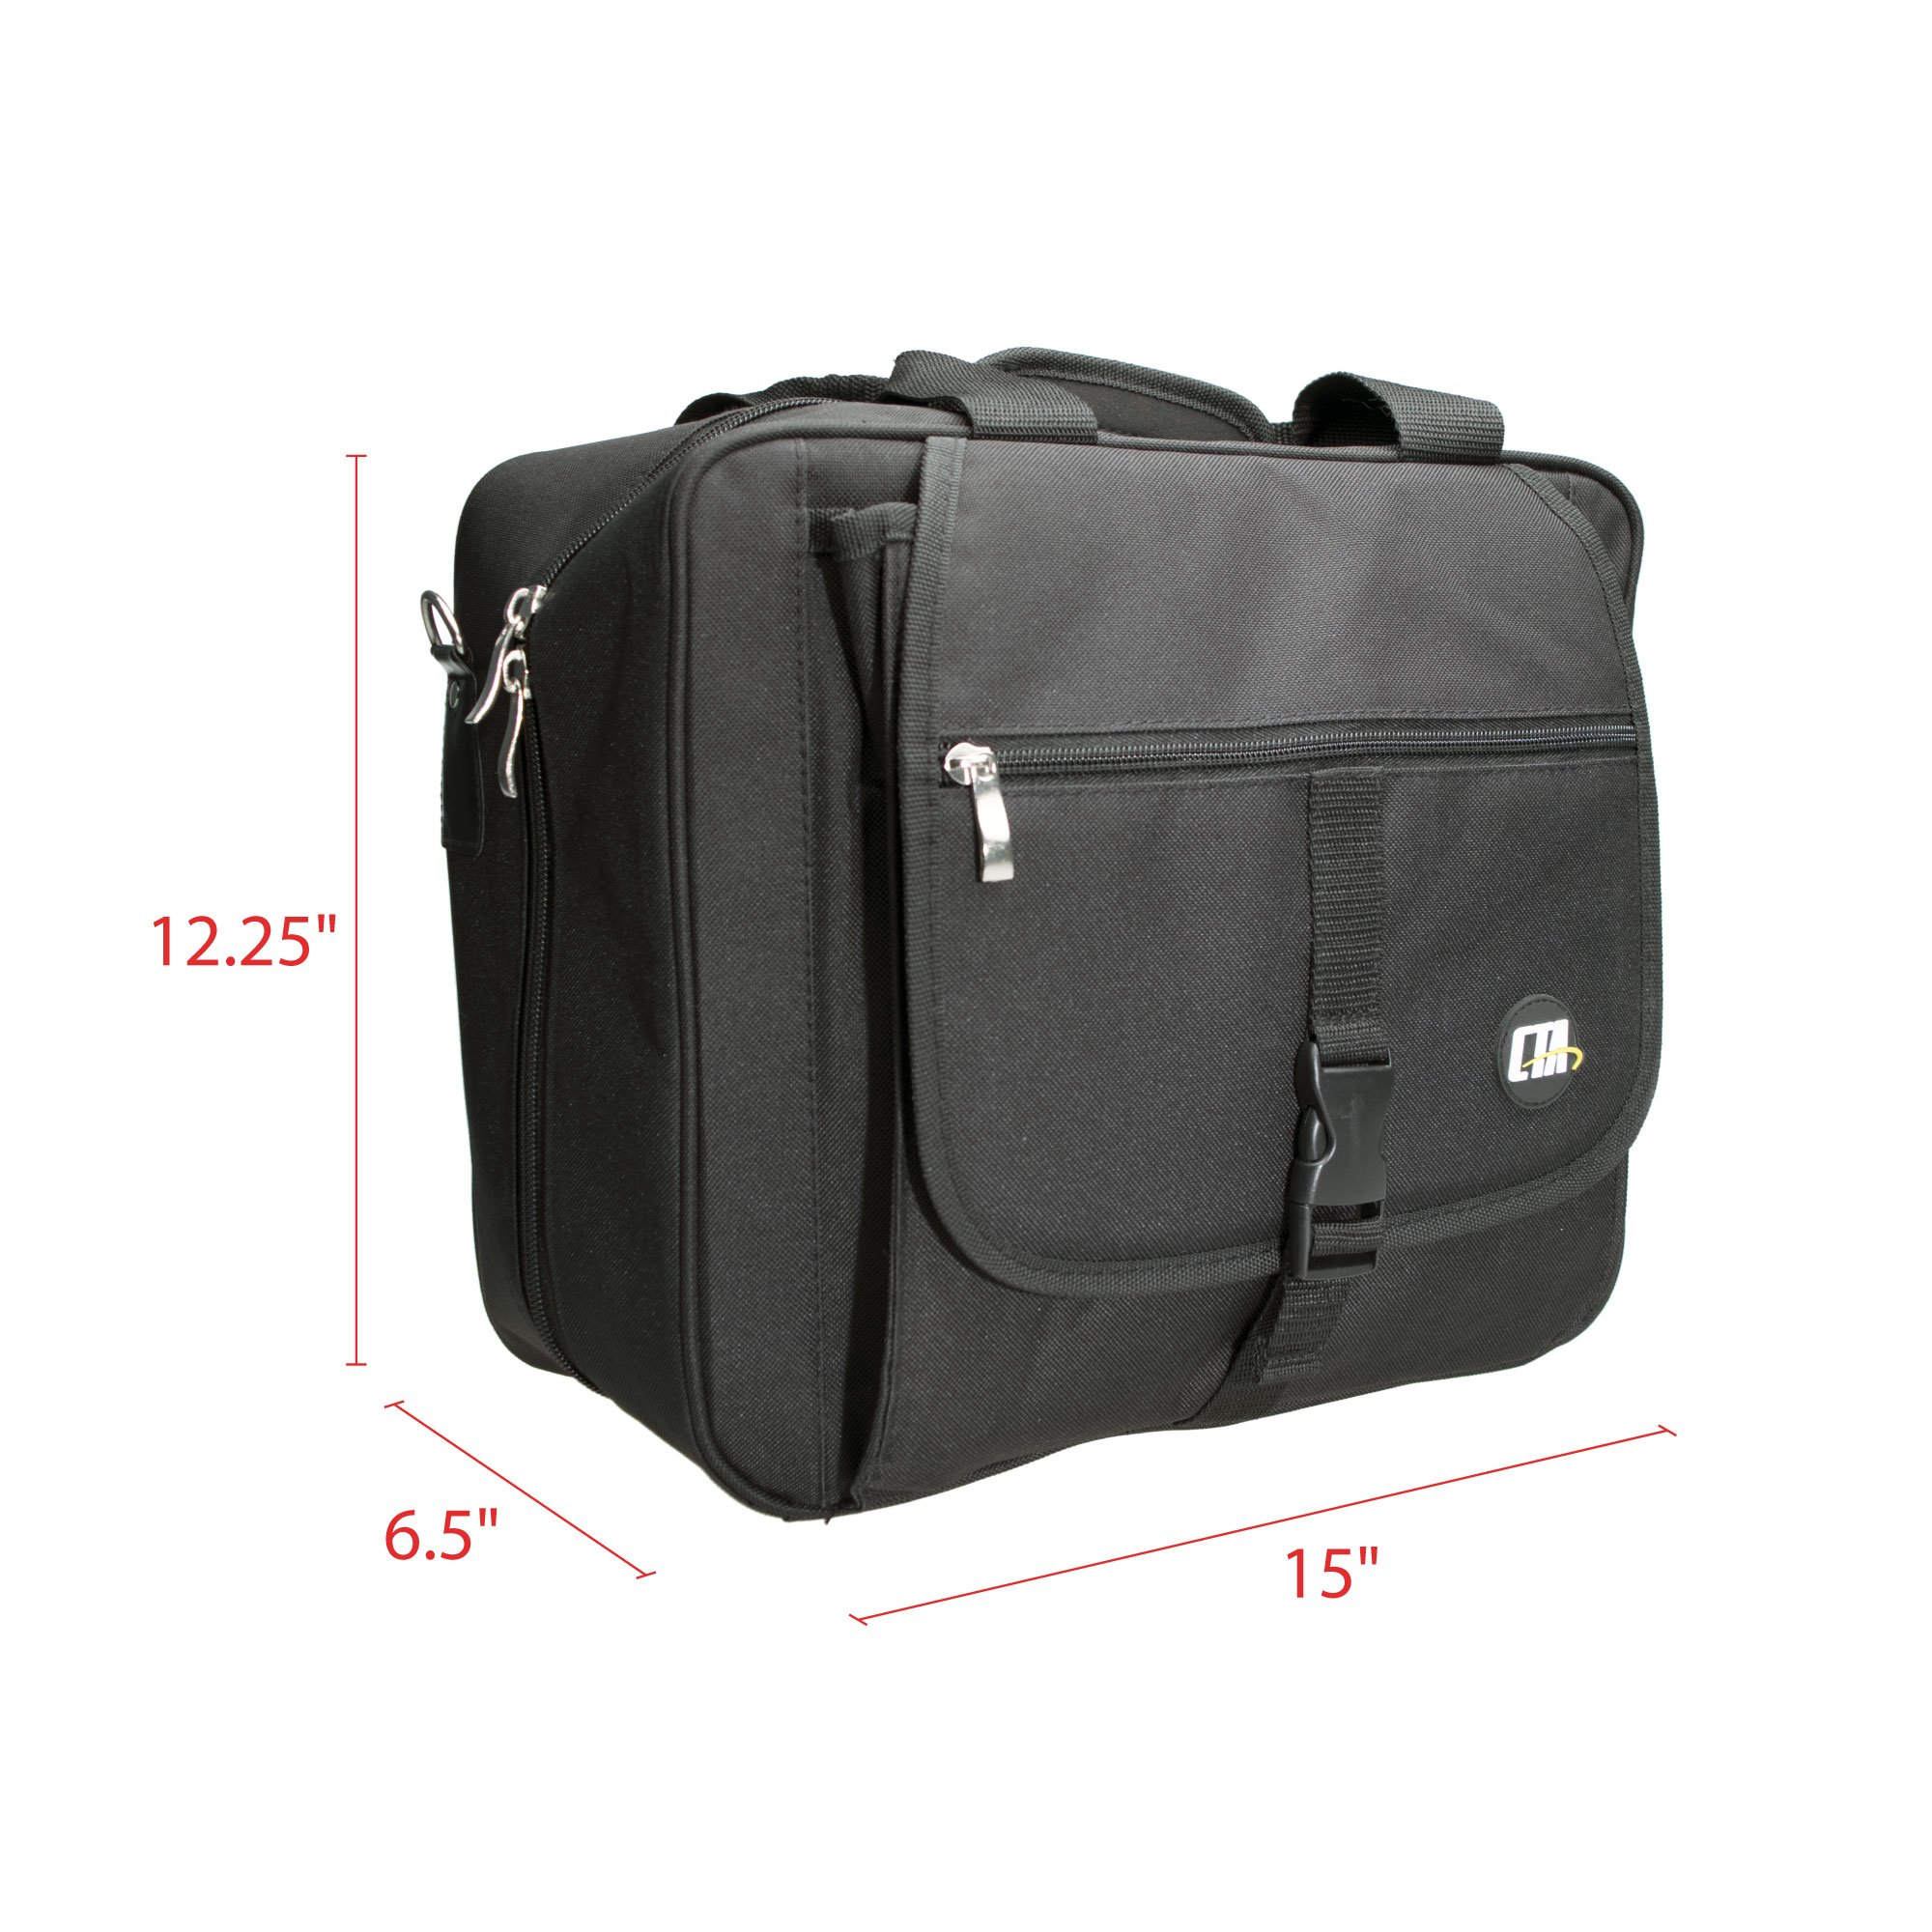 CTA Digital Multi-Function Carrying Case for Xbox One XB1-MFC by CTA Digital (Image #5)